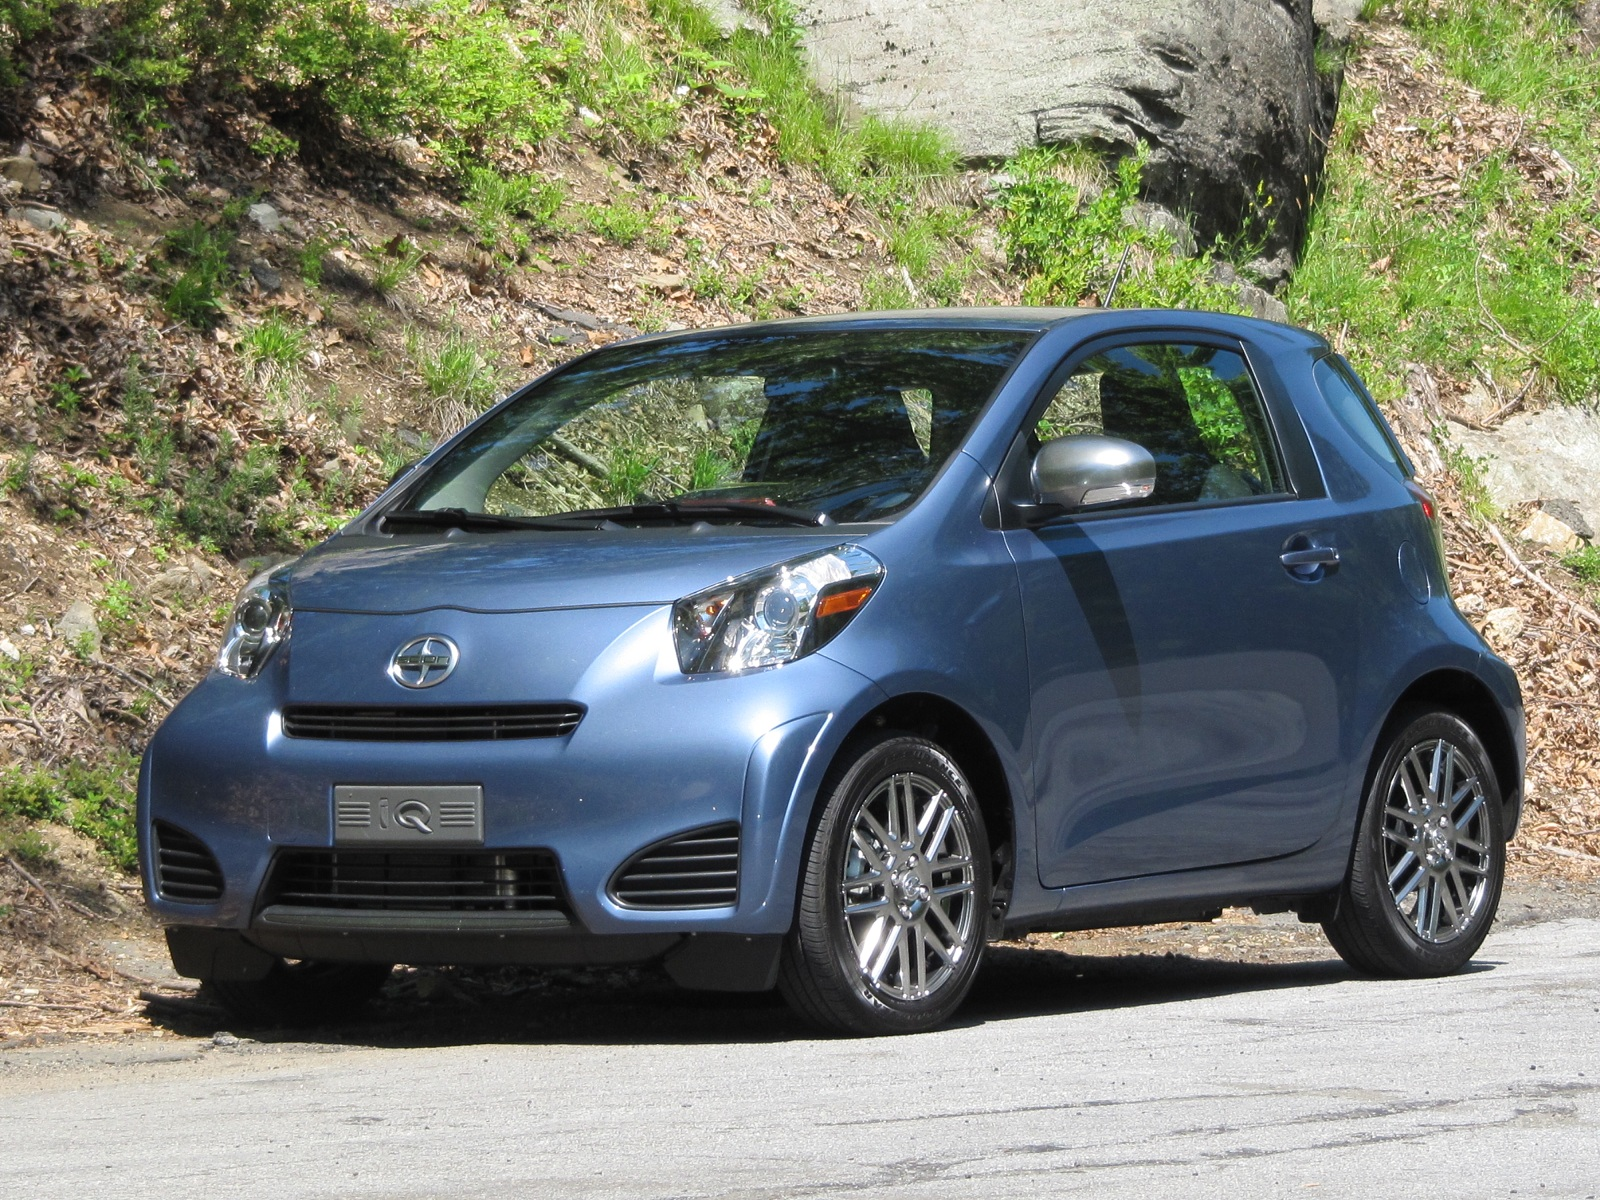 2012 Scion IQ, 2012 Honda CR-Z: Same Gas Mileage, But Very ...